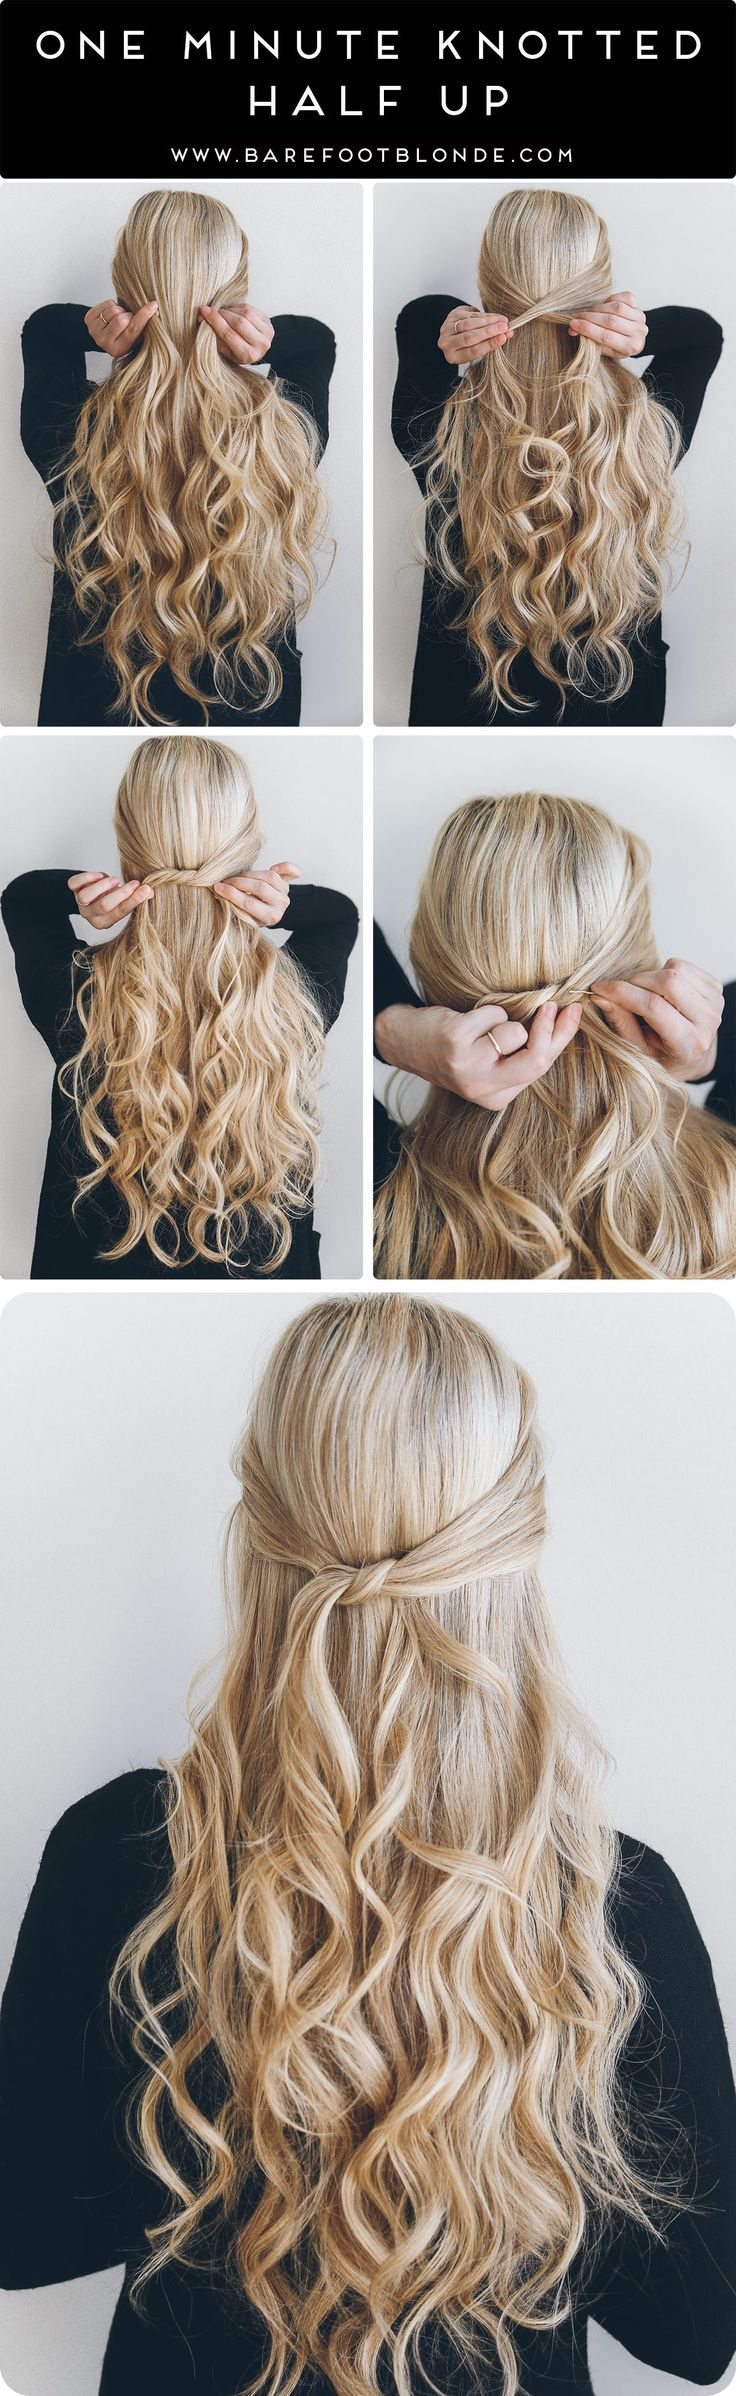 One minute knotted half up pinterest makeup hacks kelly s and updo